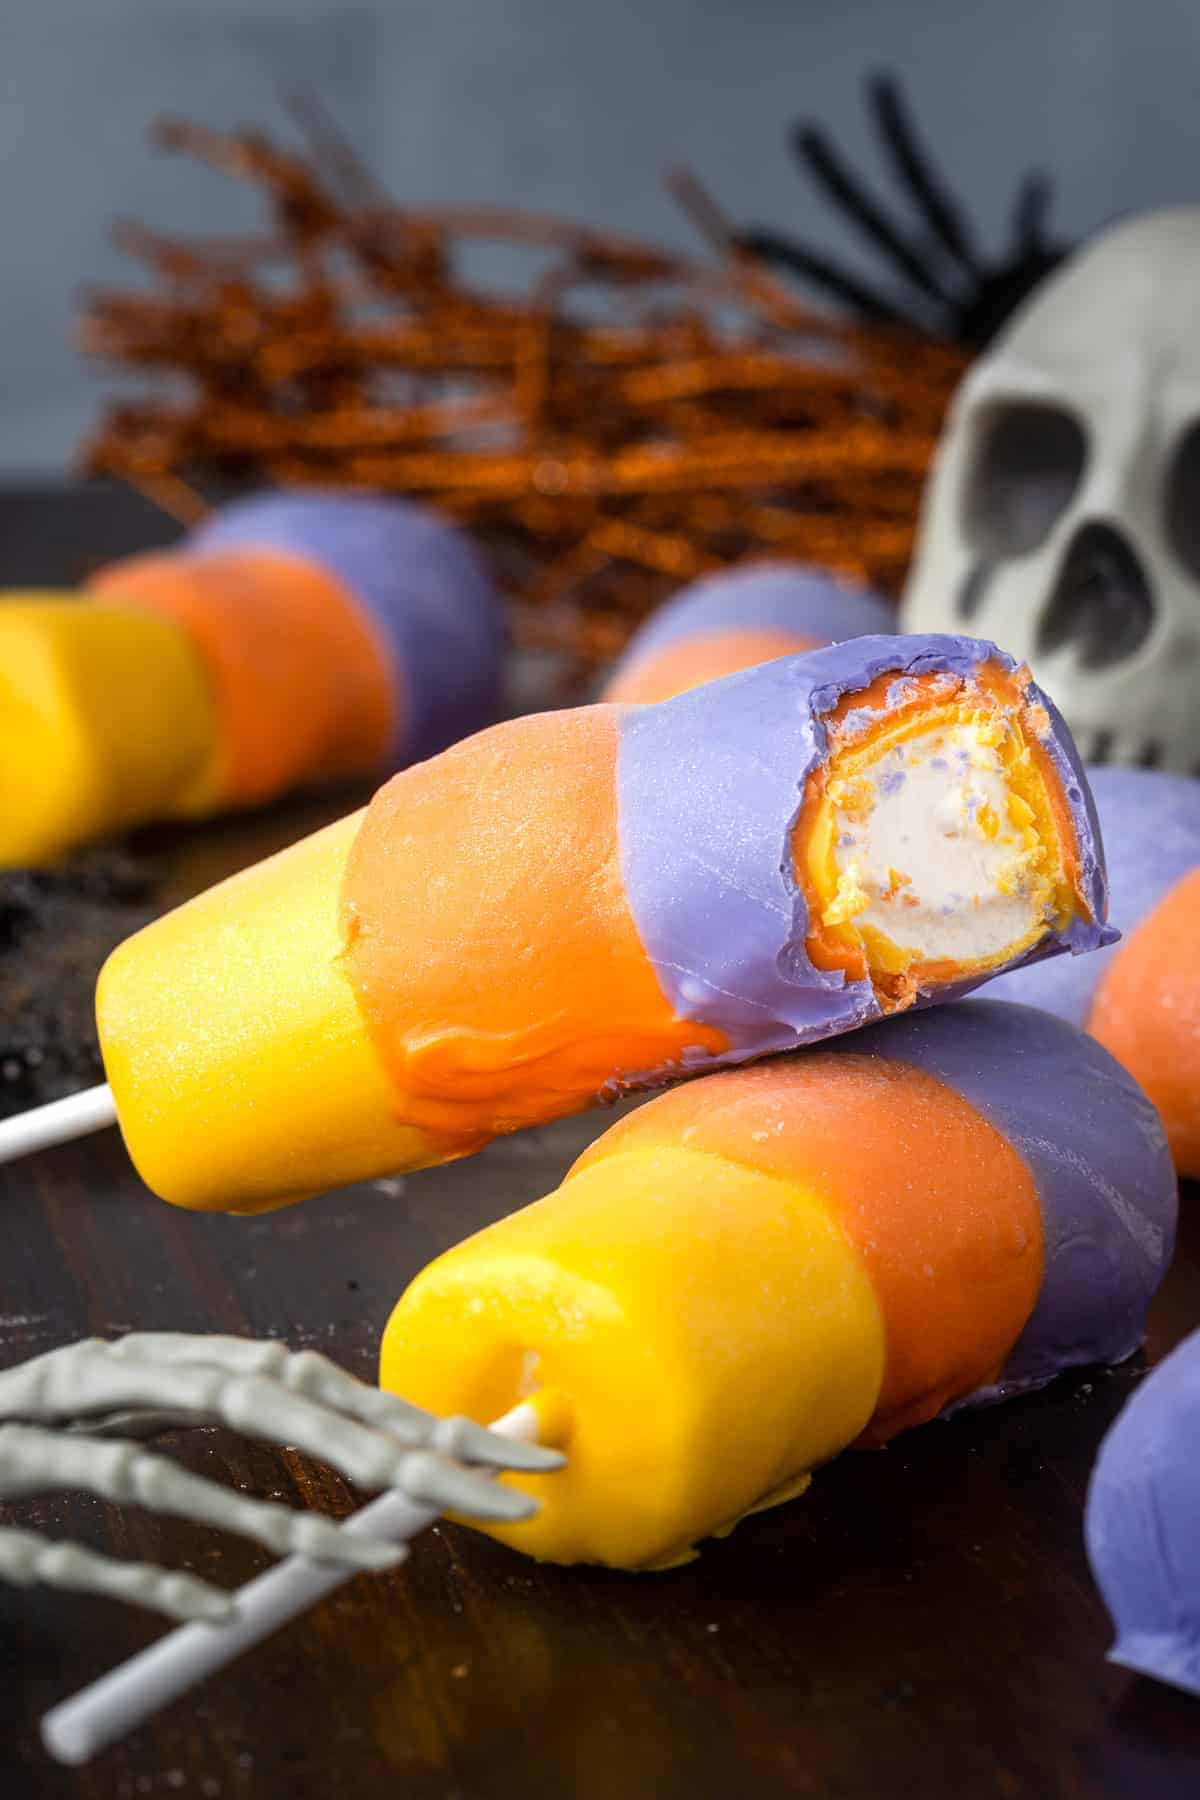 two hocus pocus themed chocolate covered marshmallow pops next to Halloween decorations.